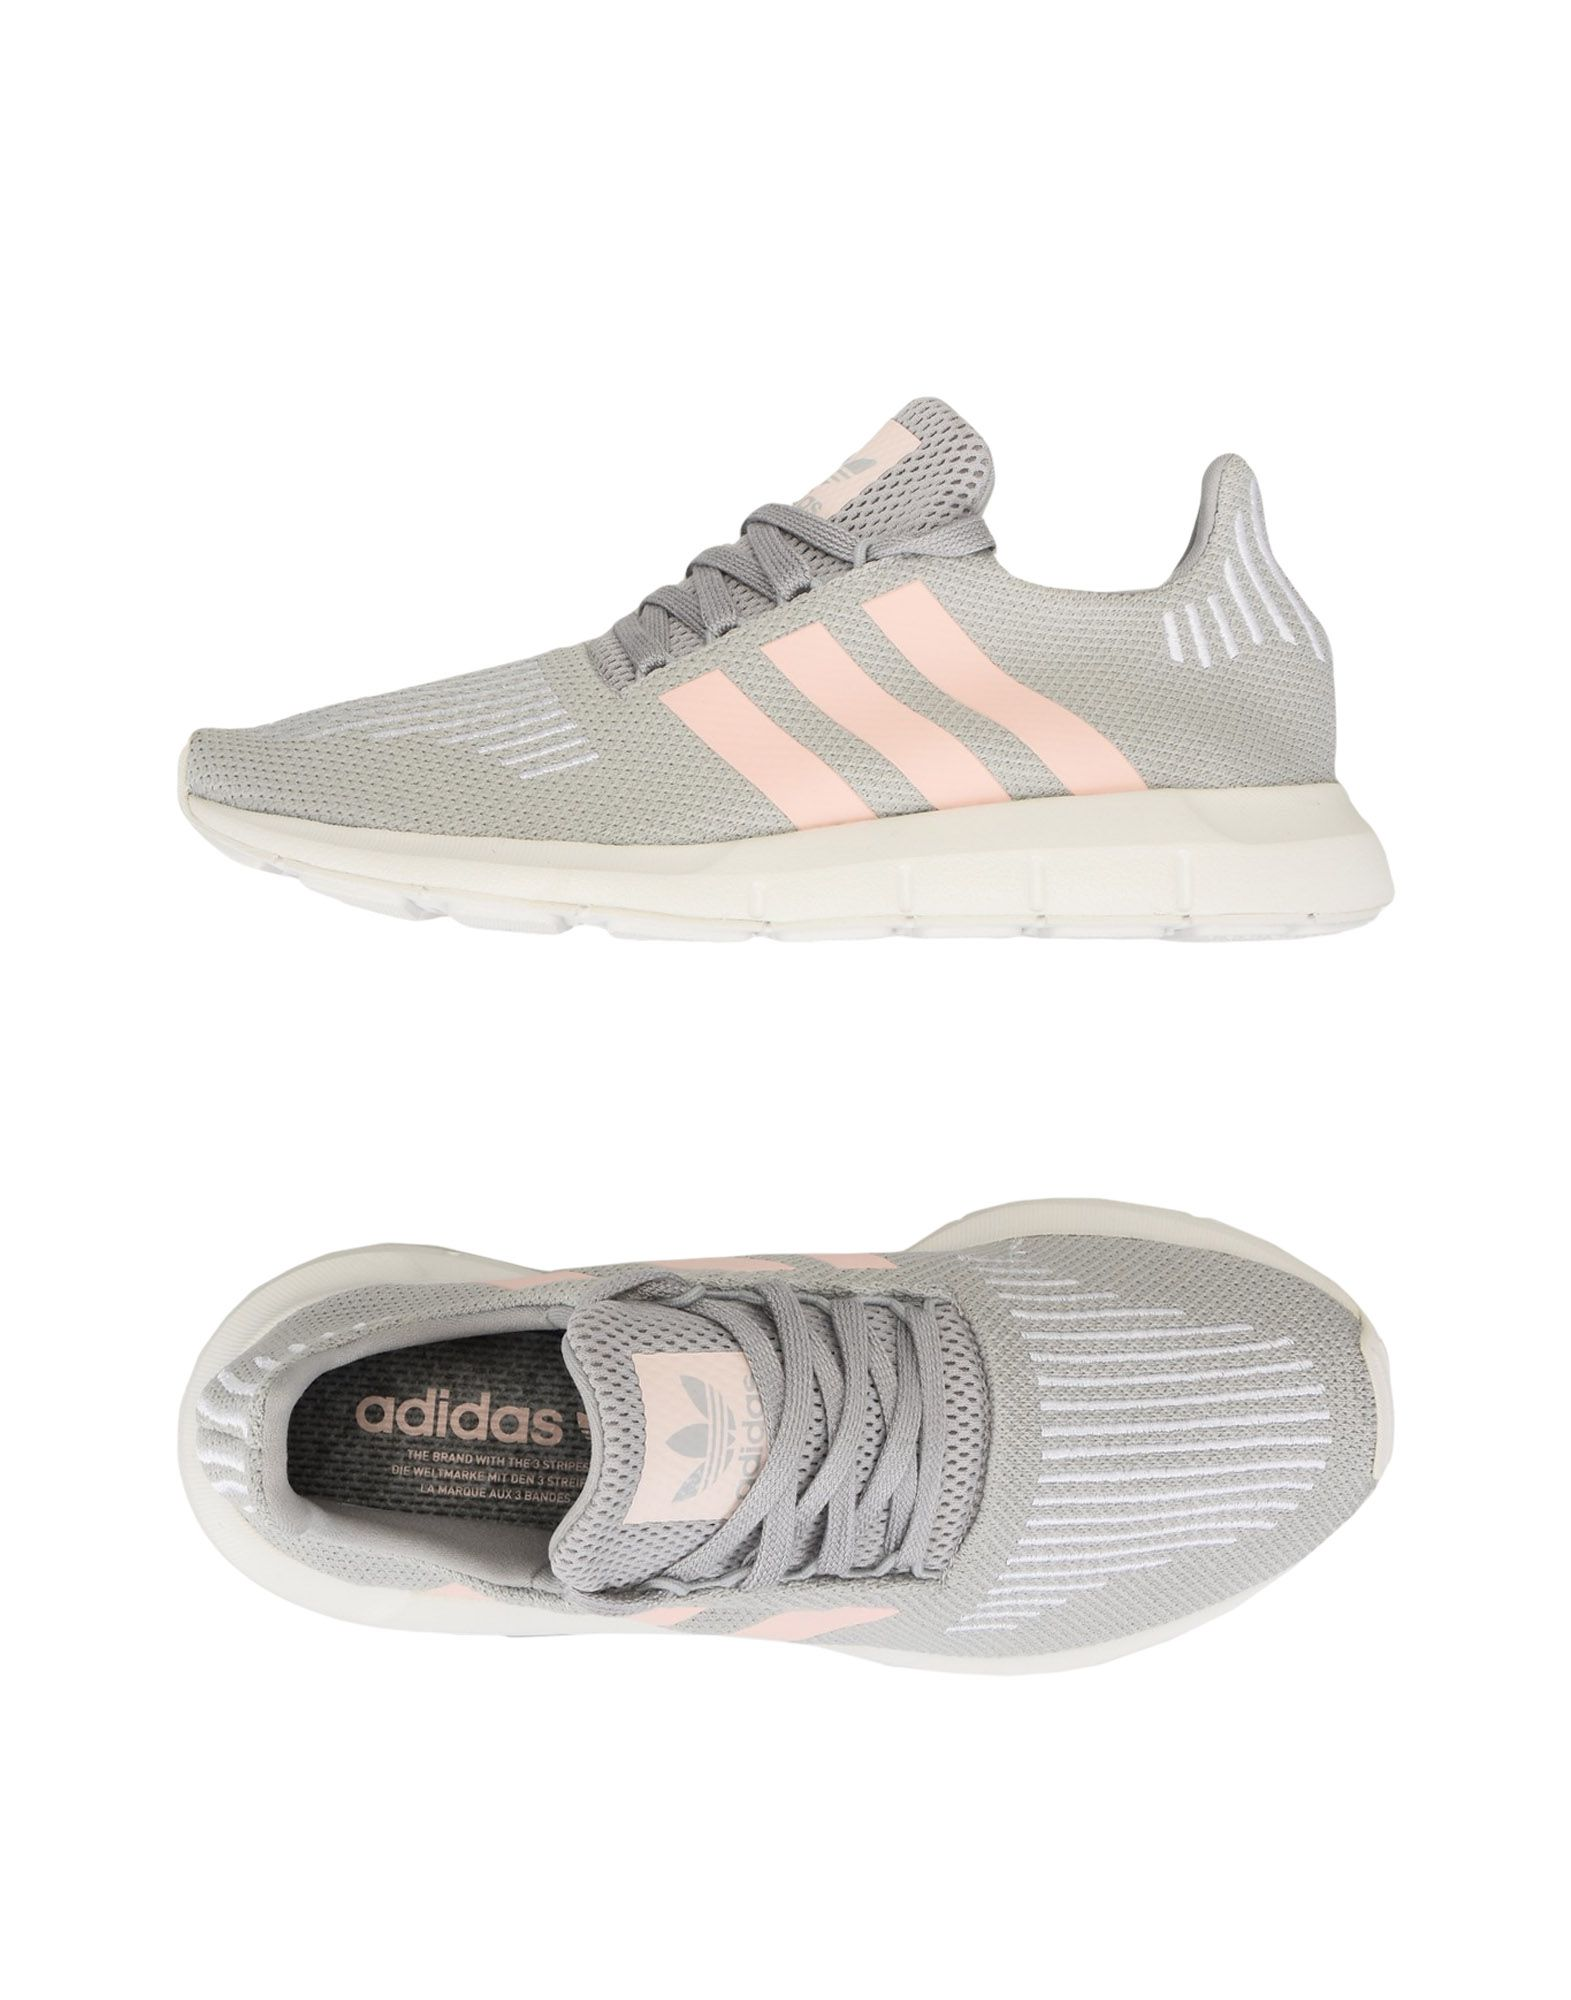 Casual salvaje Zapatillas Adidas Originals Swift Run Run Run W - Mujer - Zapatillas Adidas Originals  Gris perla 278ee3